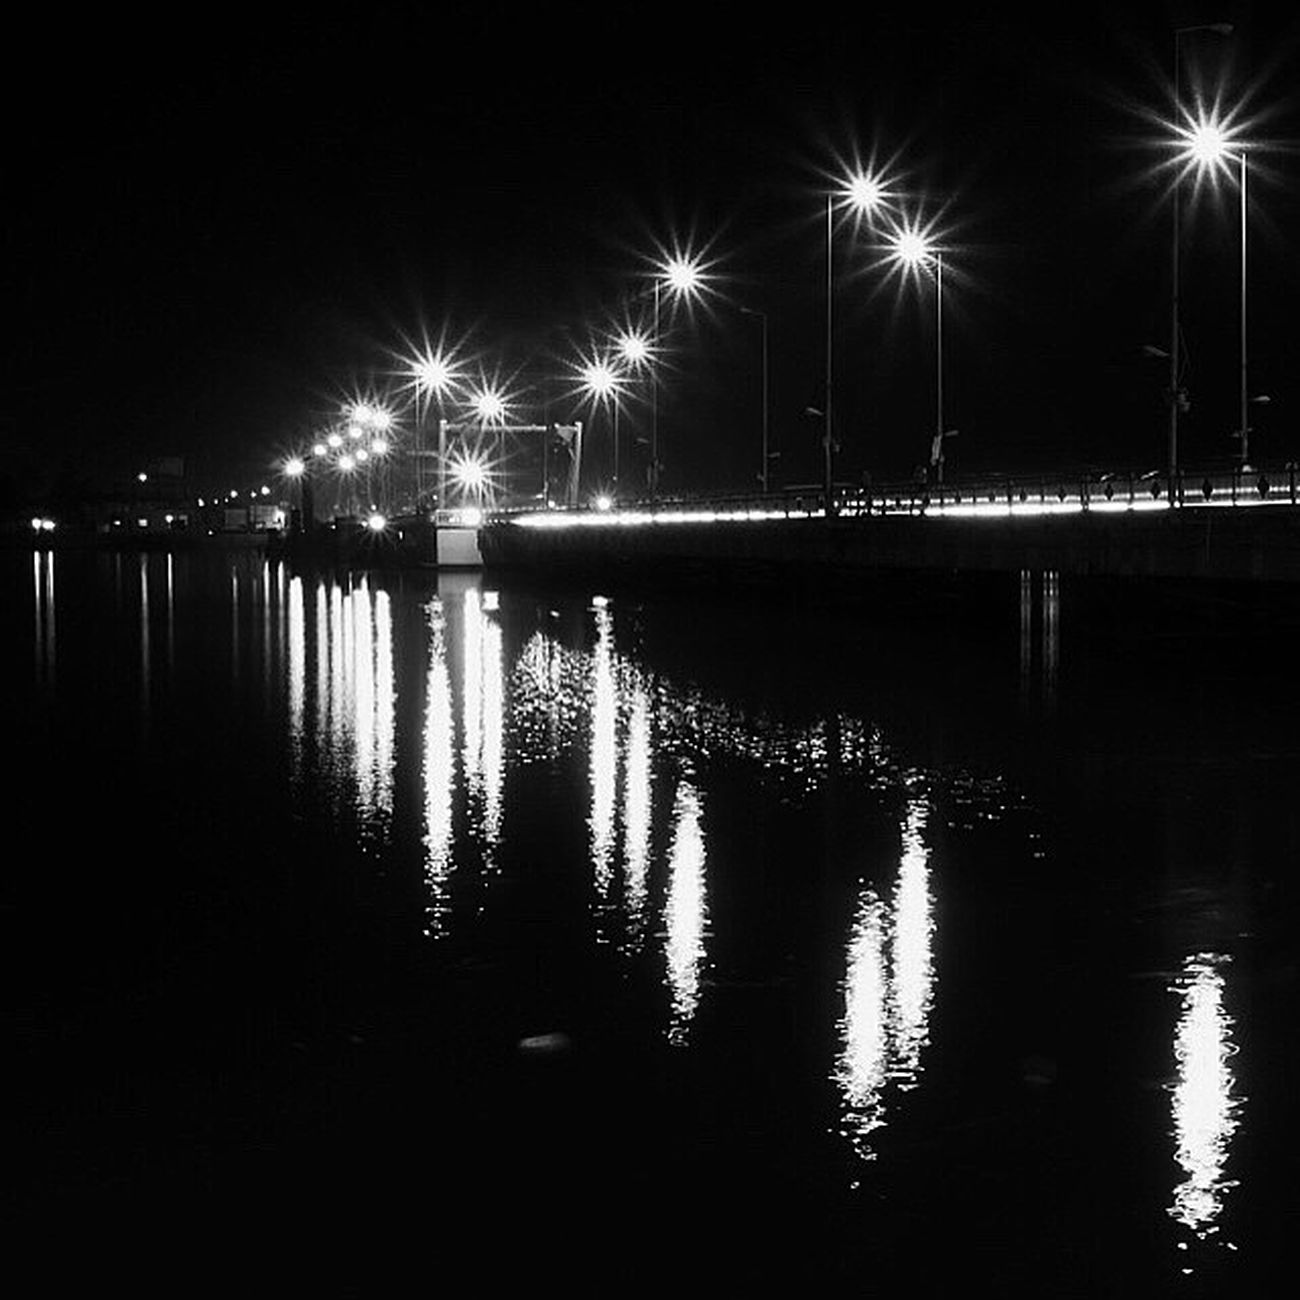 Panasonic  Gm5 Micro_four_third Mft Basrah Iraq Monochrome Bridge River Shatt_al_arab Night Lights